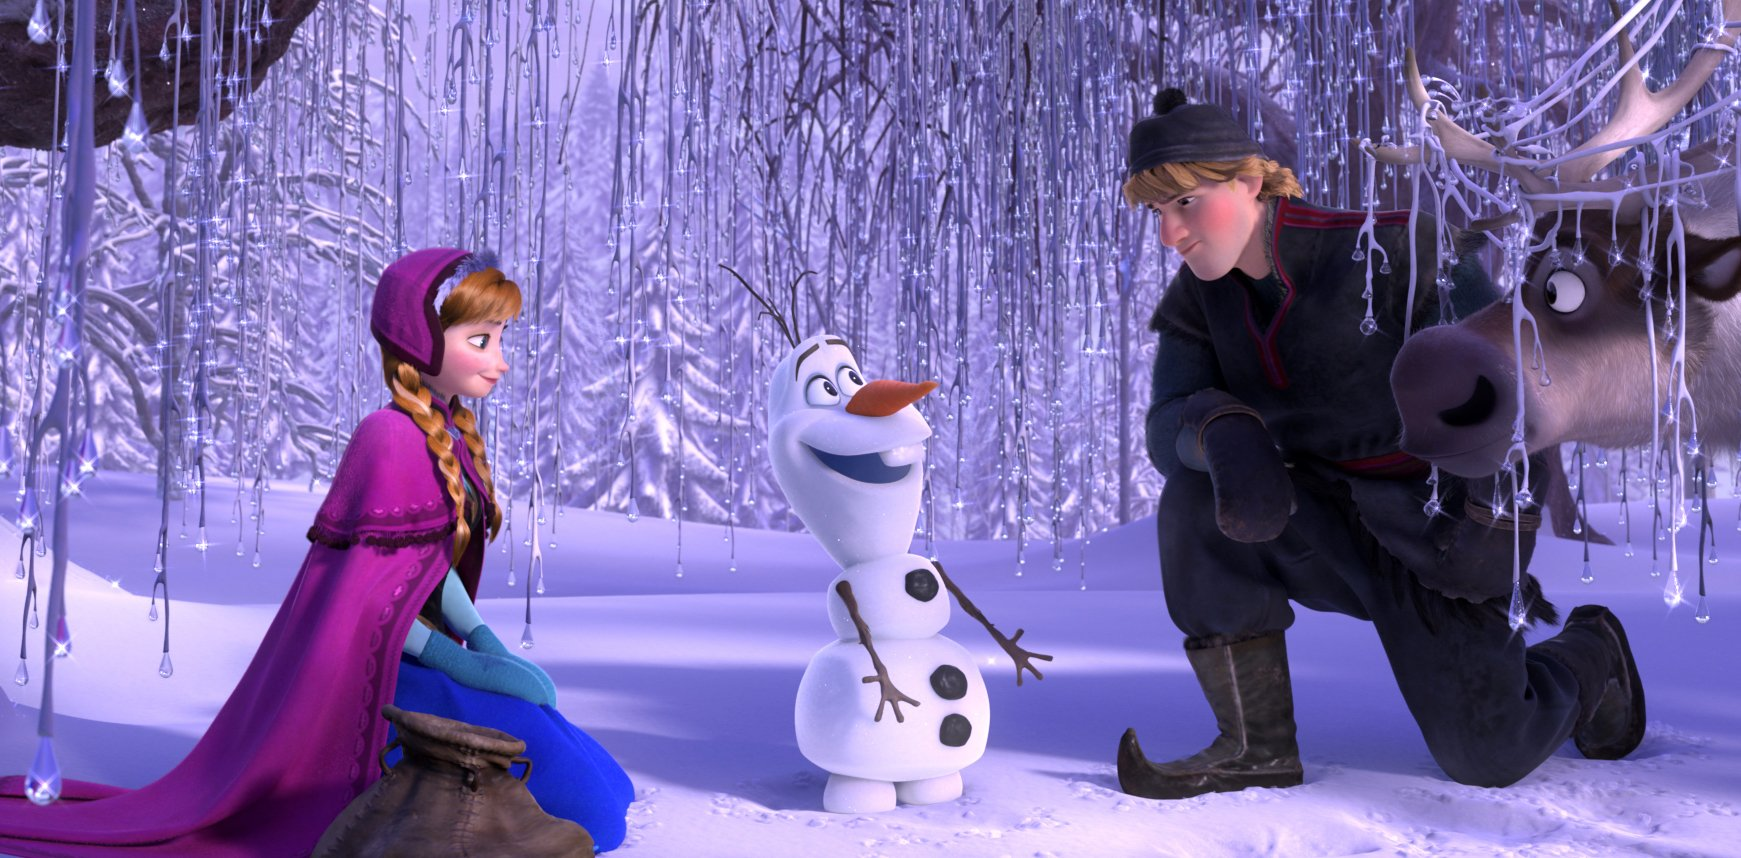 Josh Gad won't play Olaf in the Broadway version of Frozen